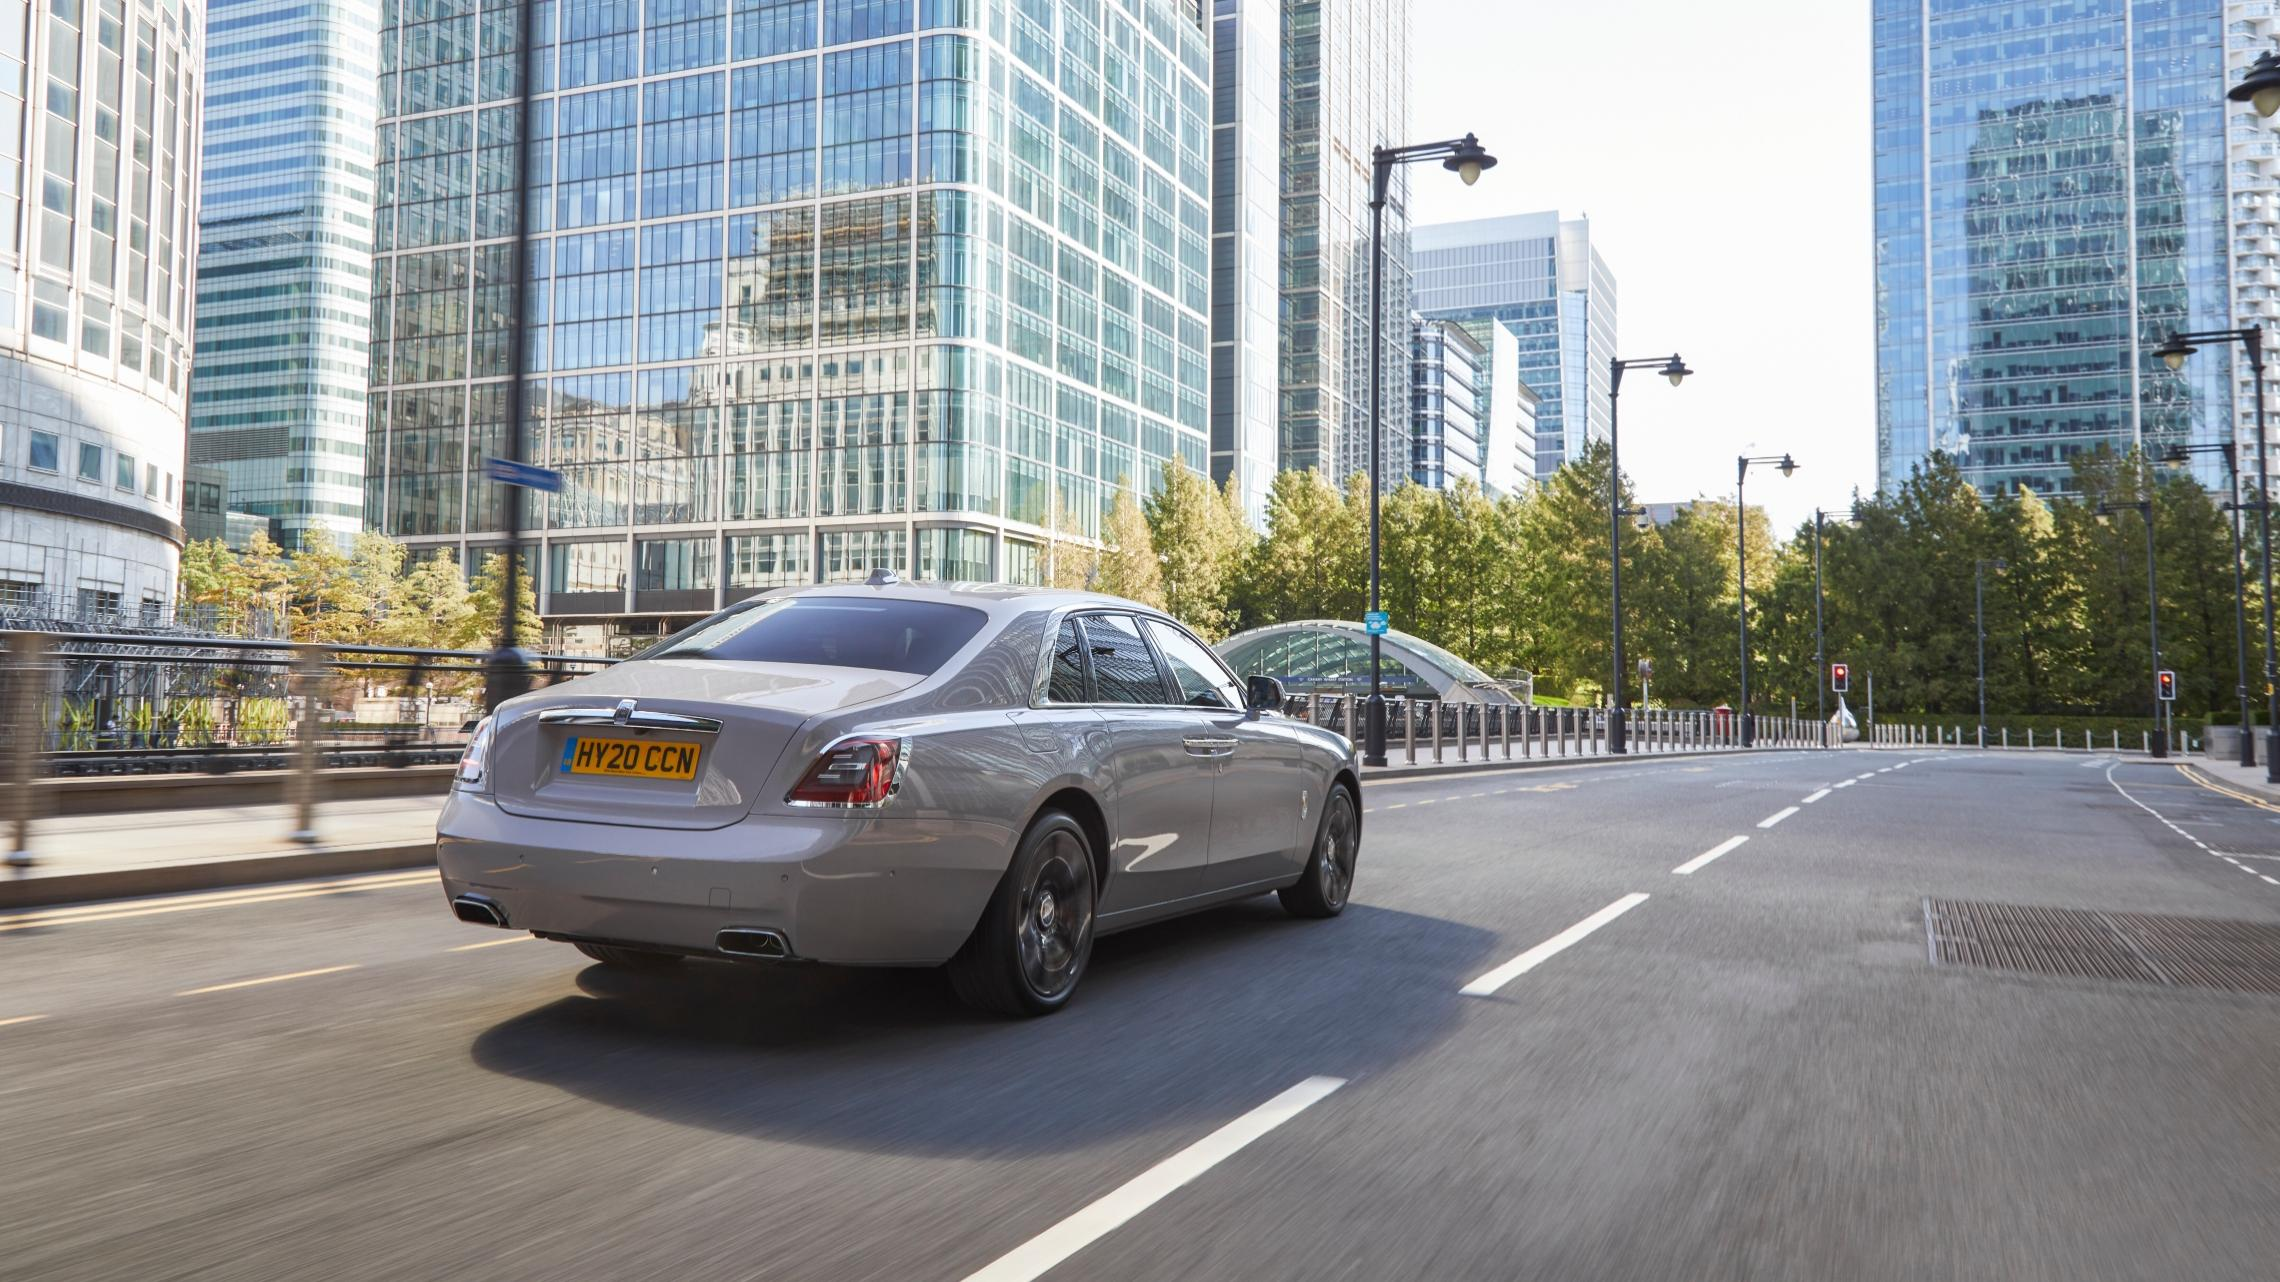 The Rolls Royce Ghost 2020 Review The Brand New Baby Roller Motoring Drive Luxury London